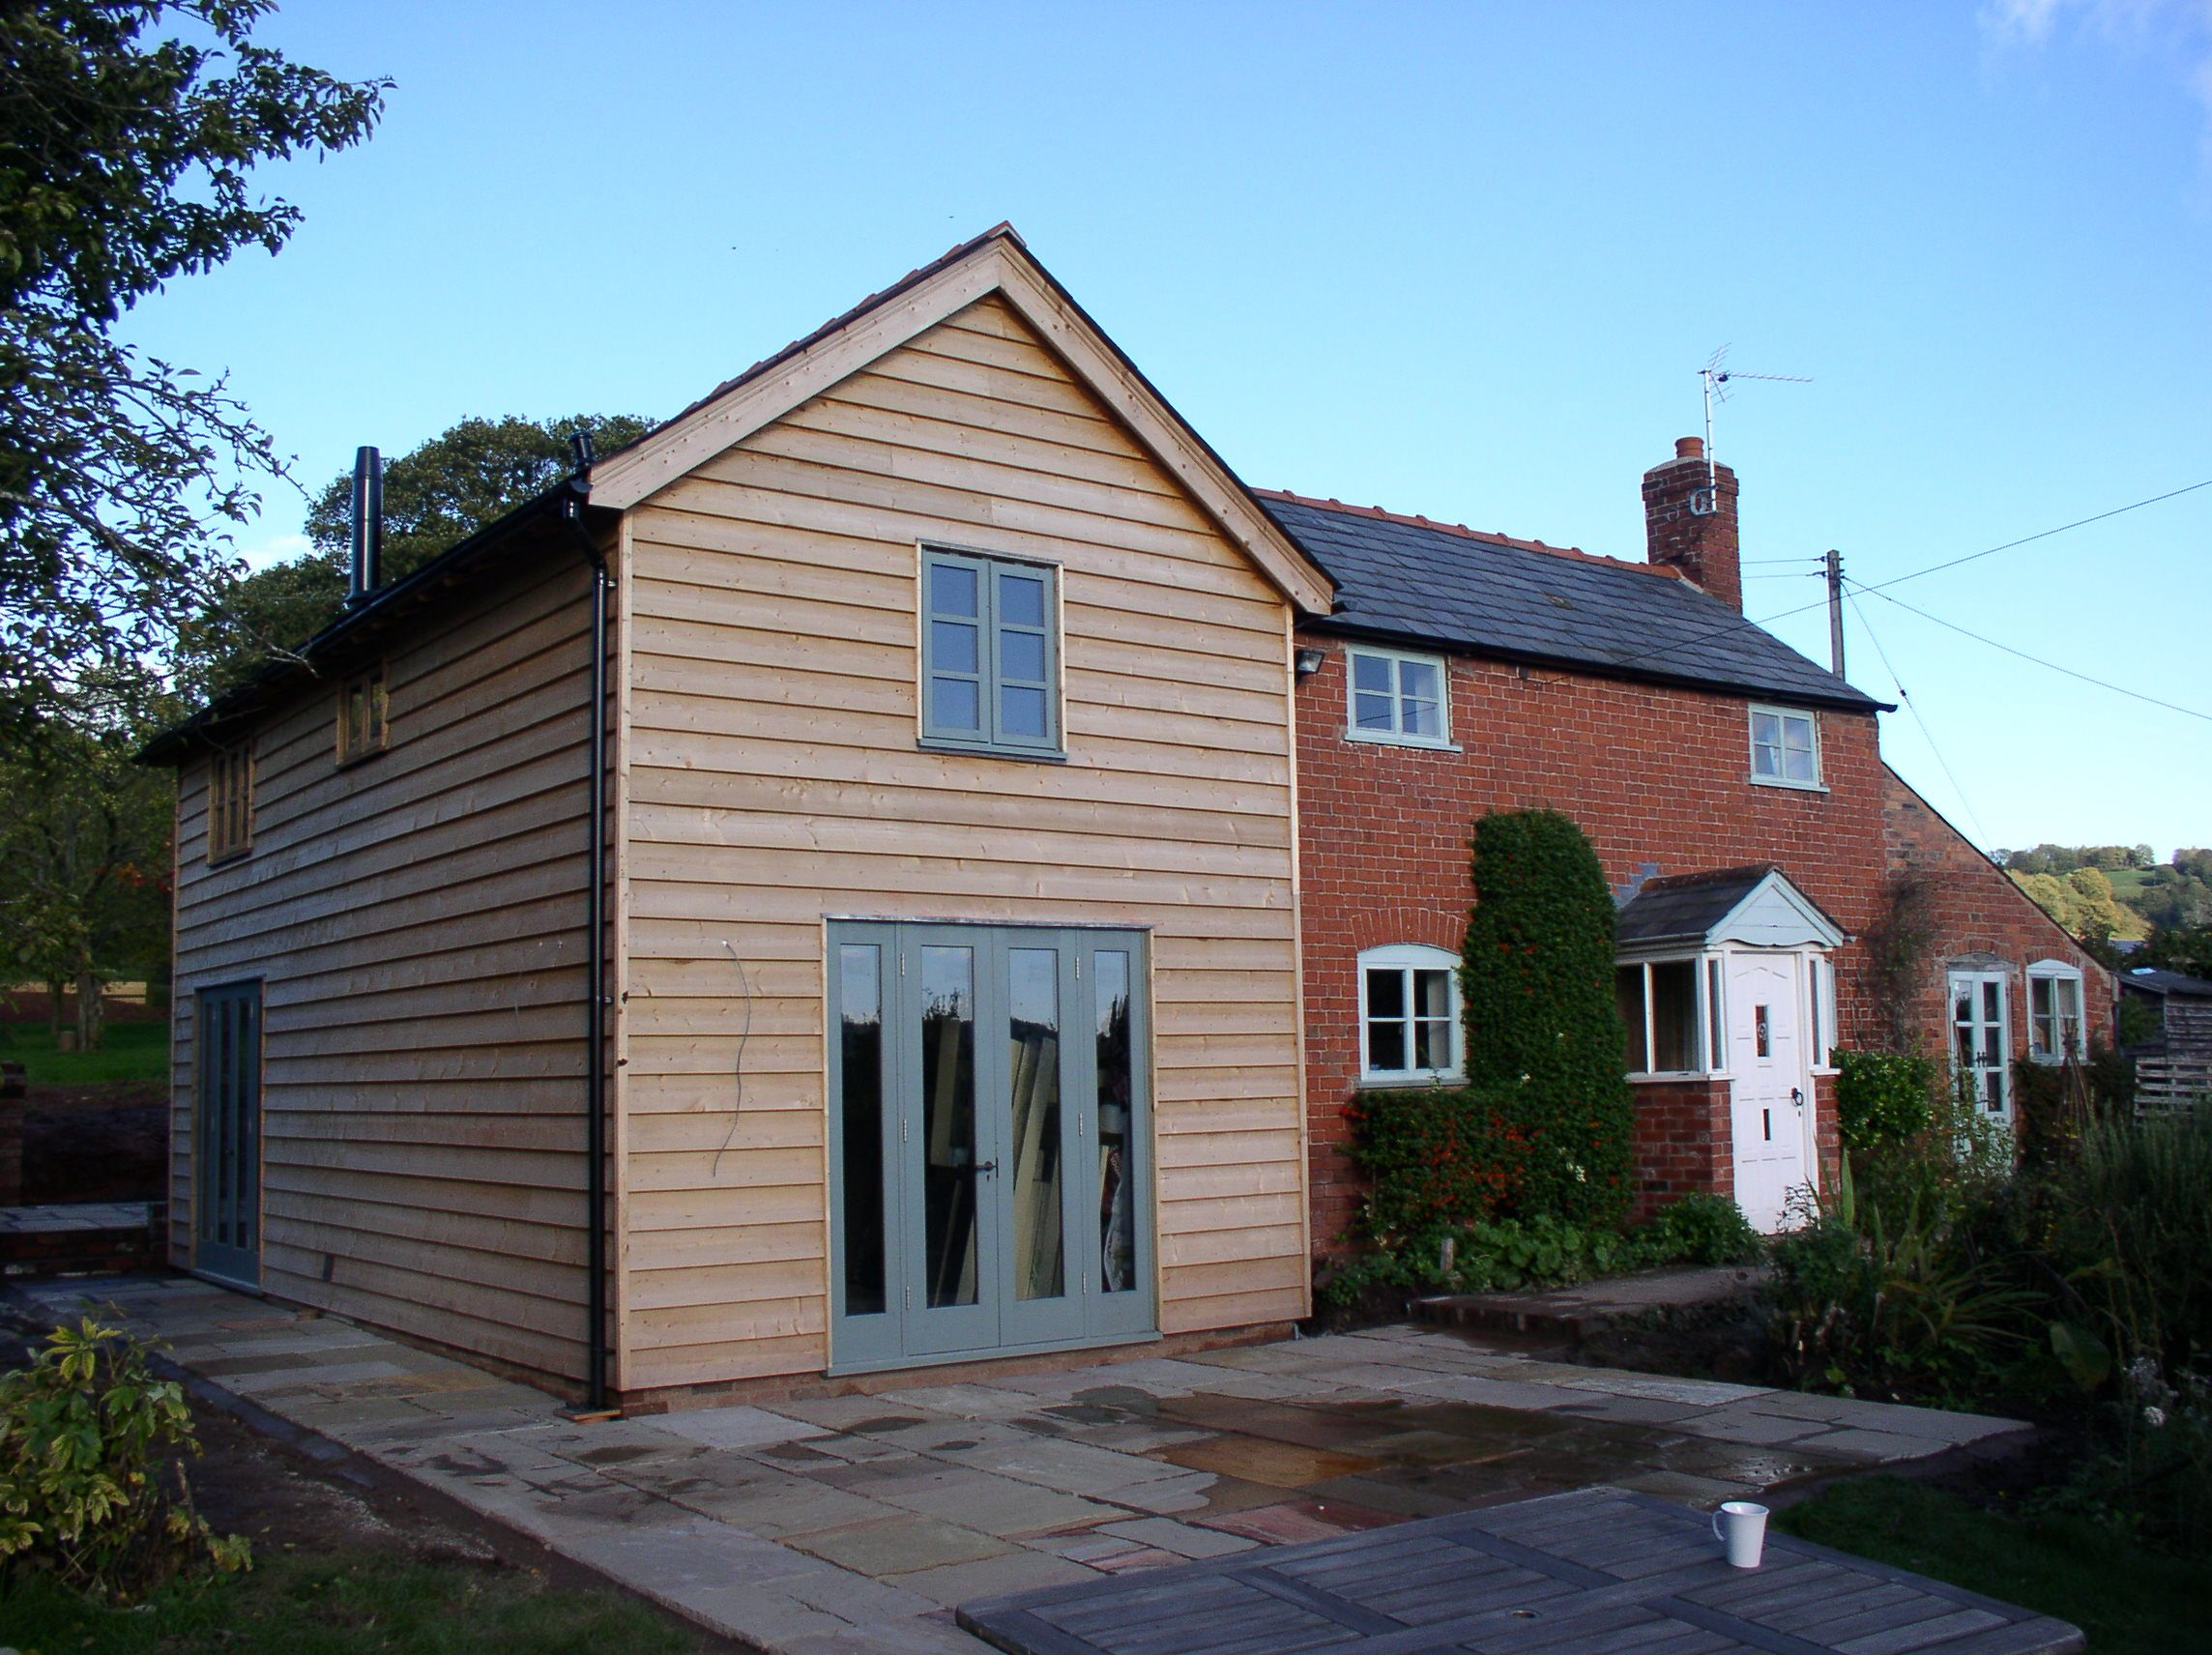 oak frame and weatherboarded extension to a brick cottage